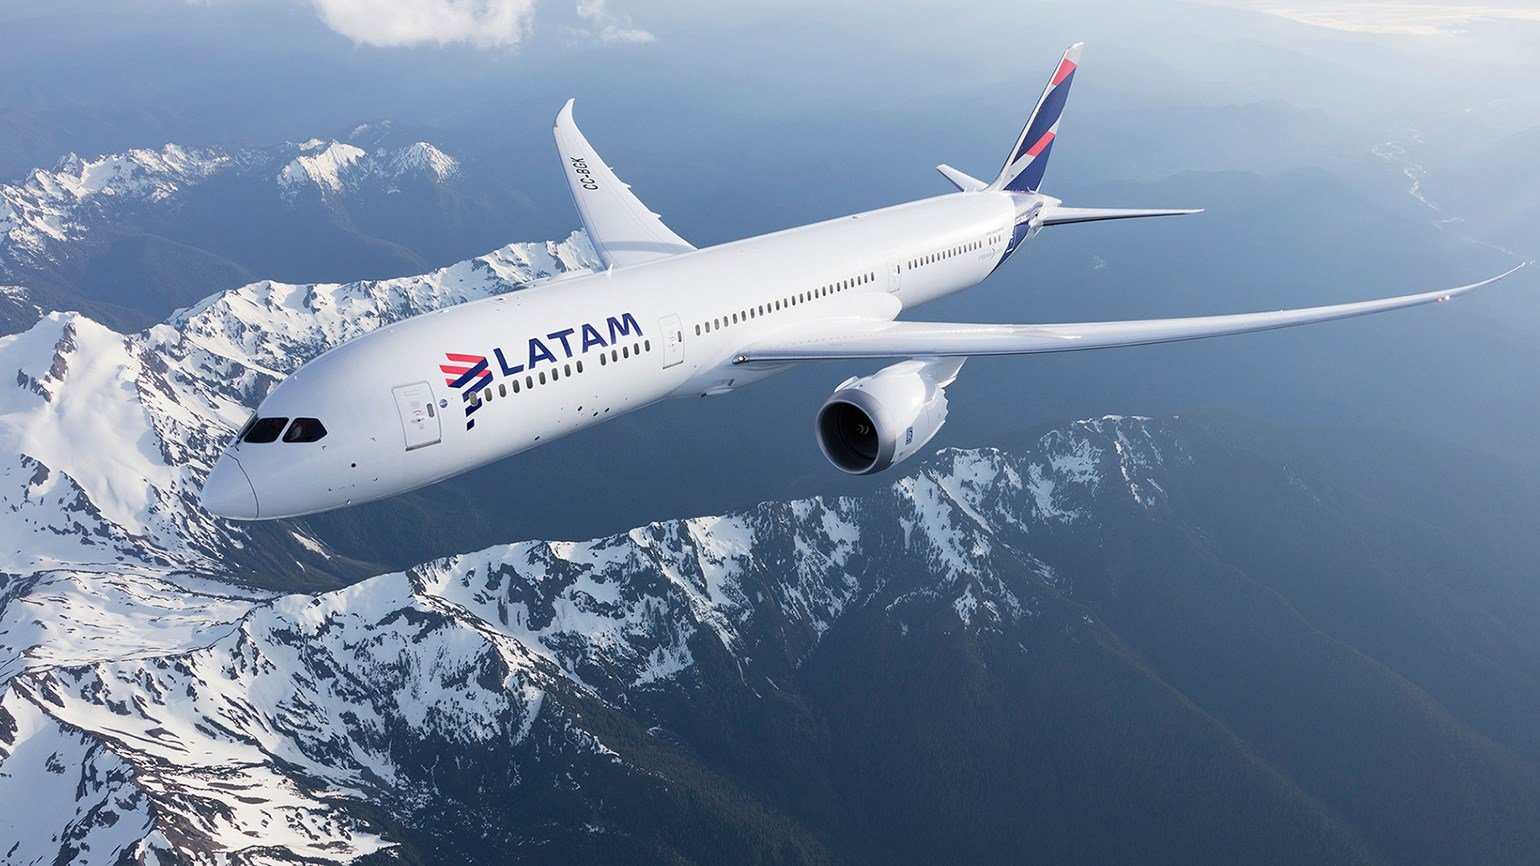 Latam files for Chapter 11 bankruptcy